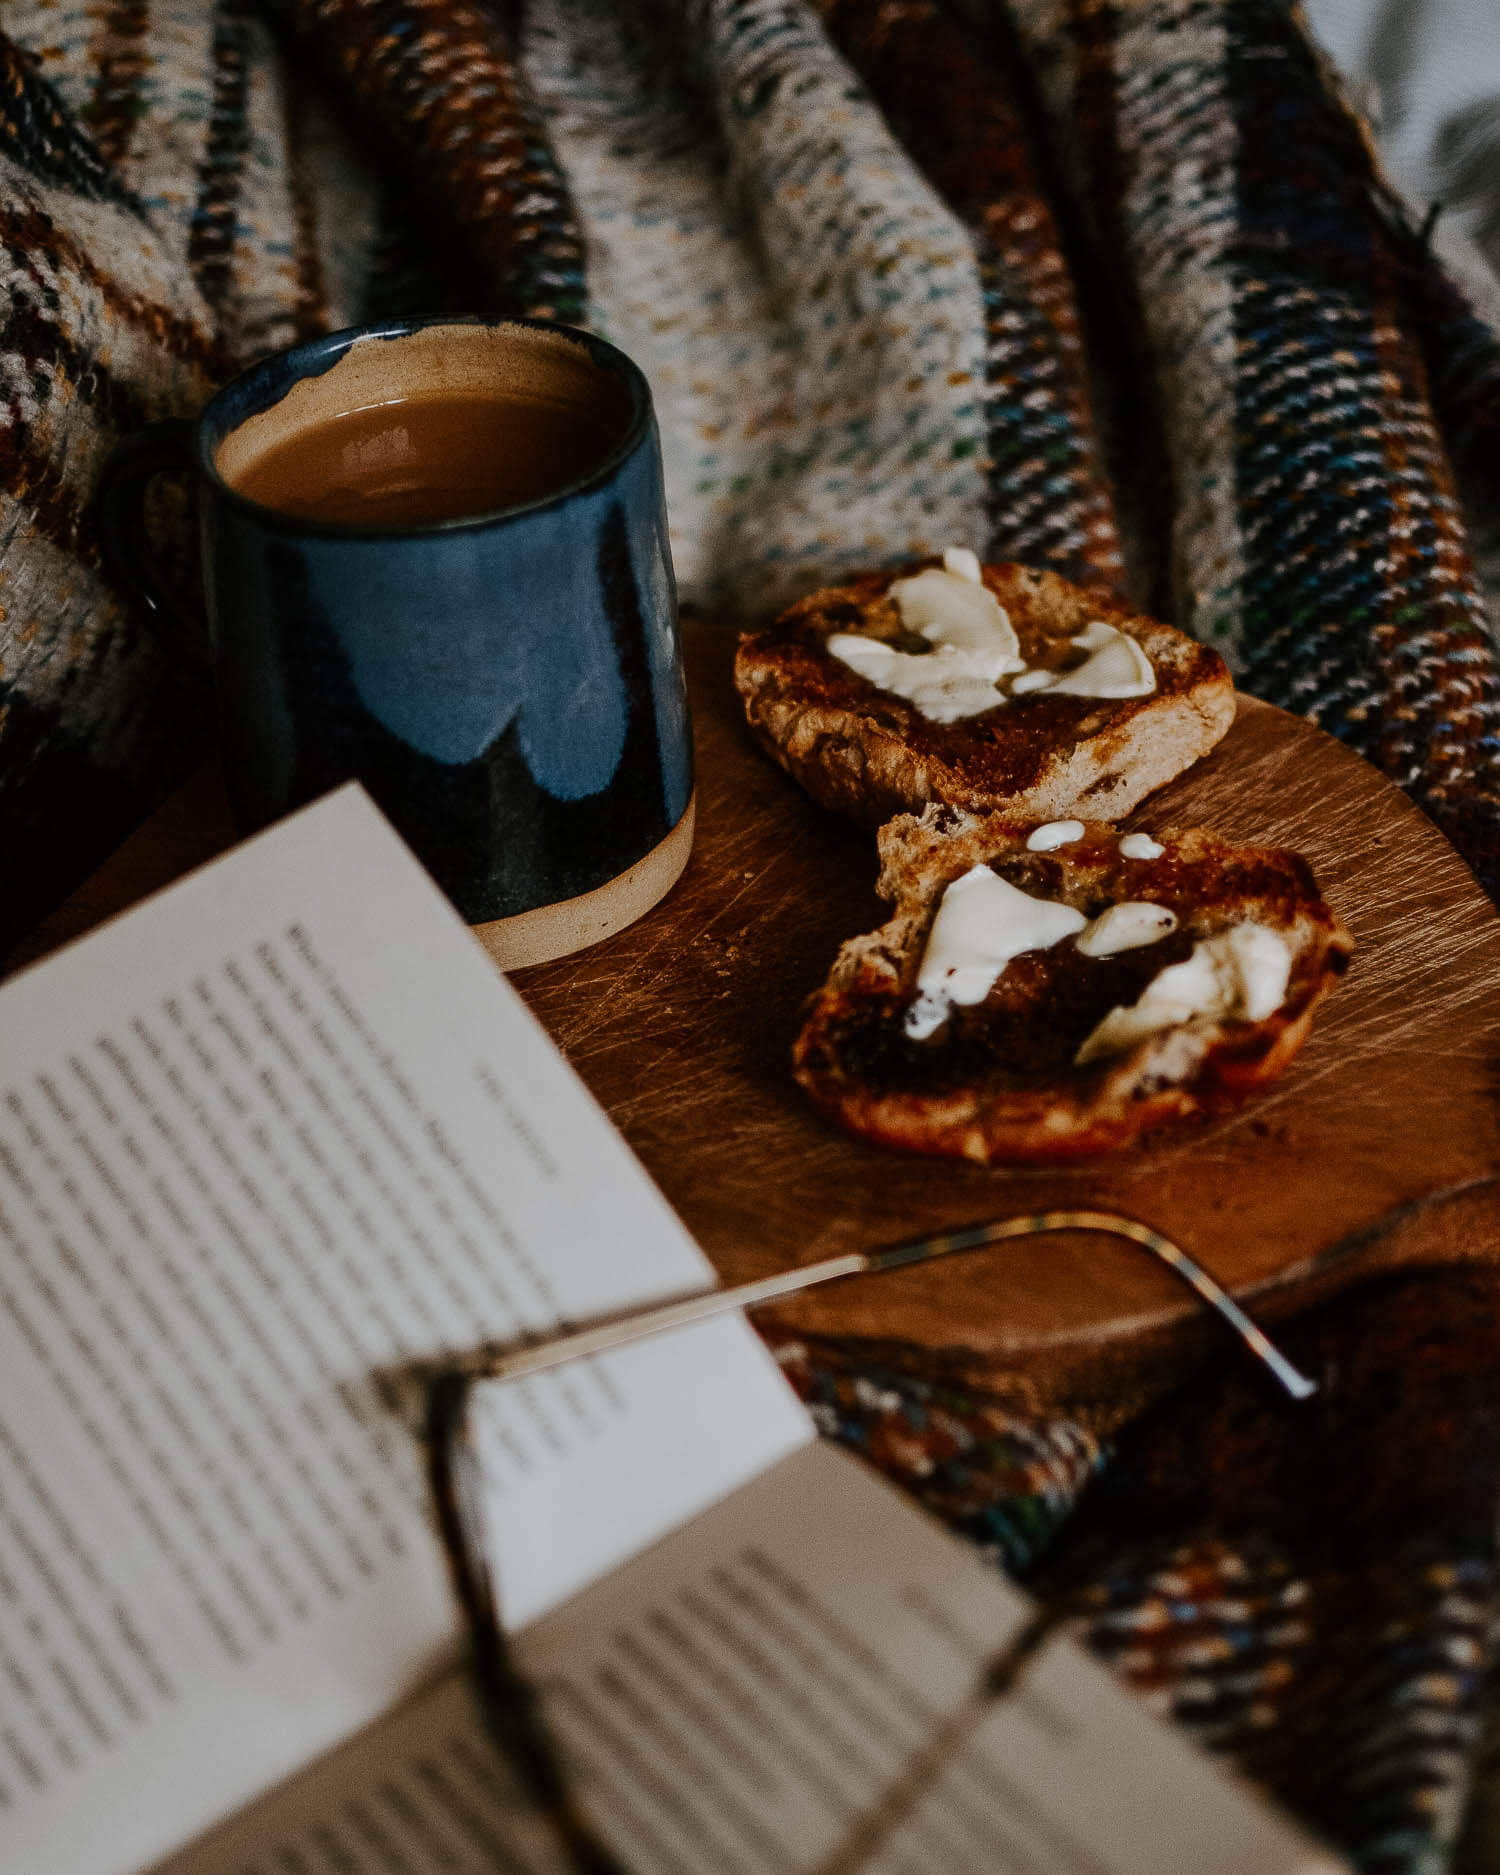 Hot cross buns with butter melting on a wooden board with a cup of tea - reading in bed | Josephine Brooks